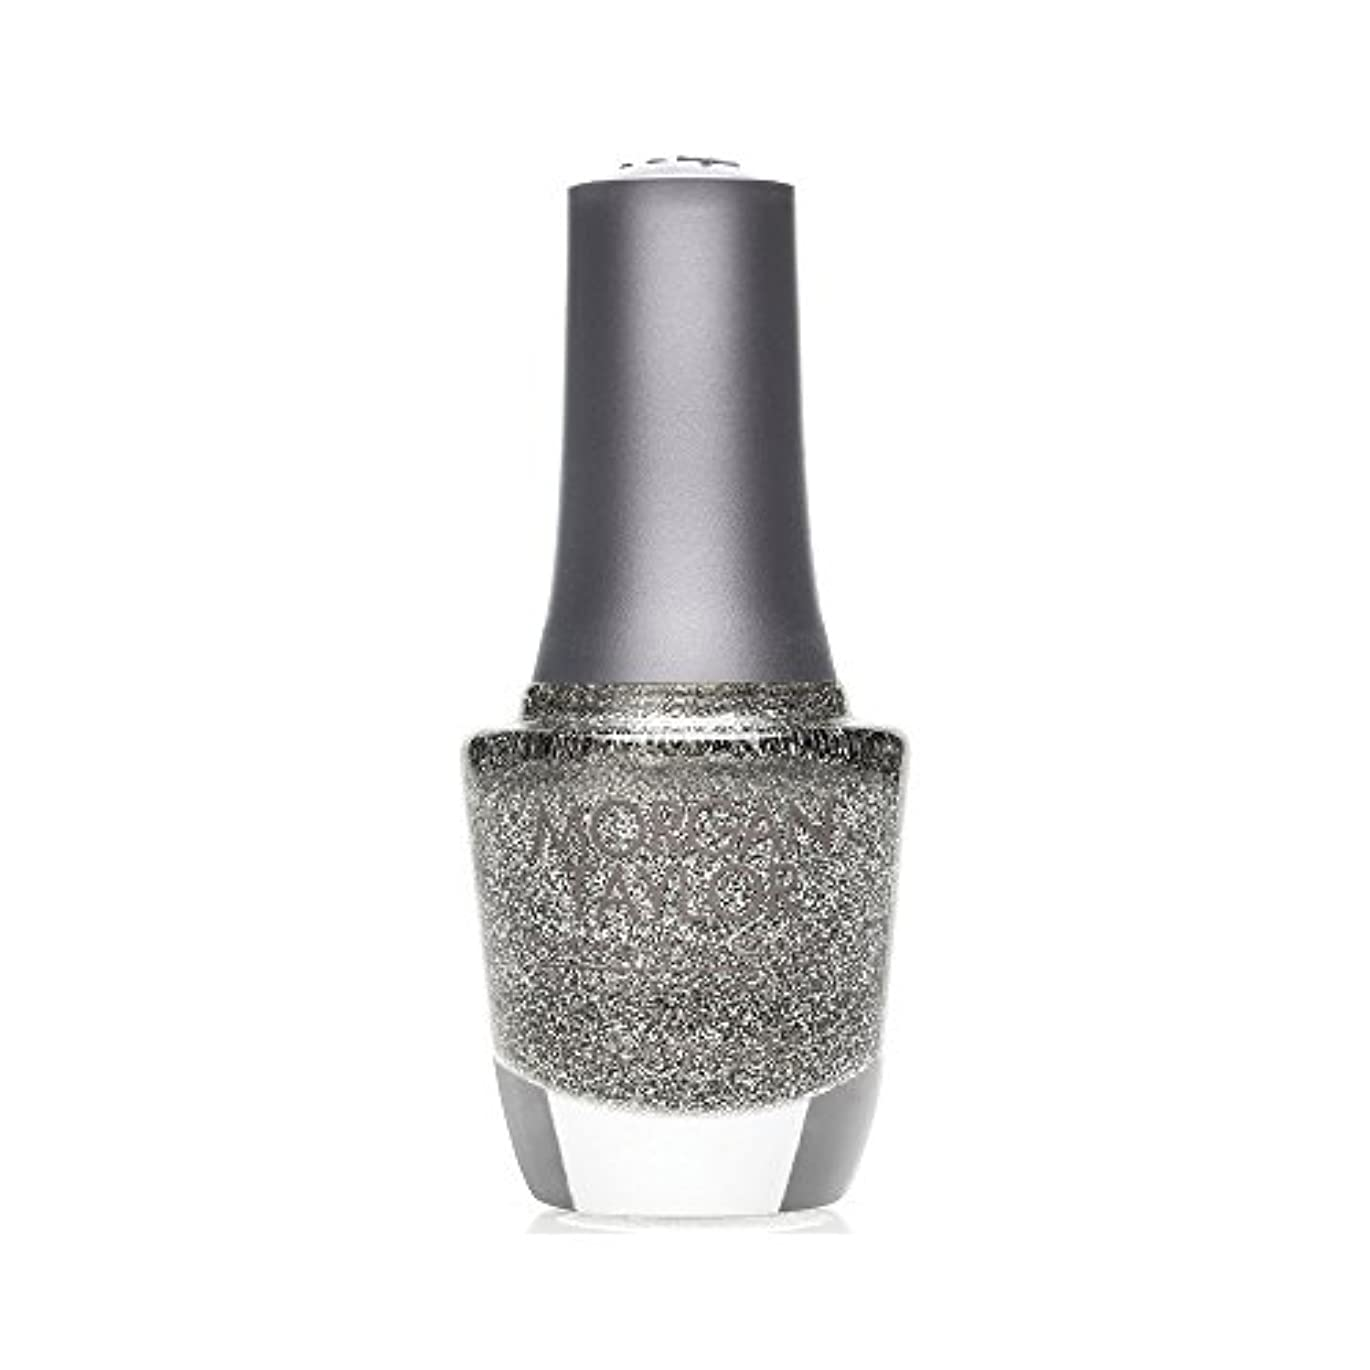 共和国気味の悪いしかしながらMorgan Taylor - Professional Nail Lacquer - Time to Shine - 15 mL / 0.5oz